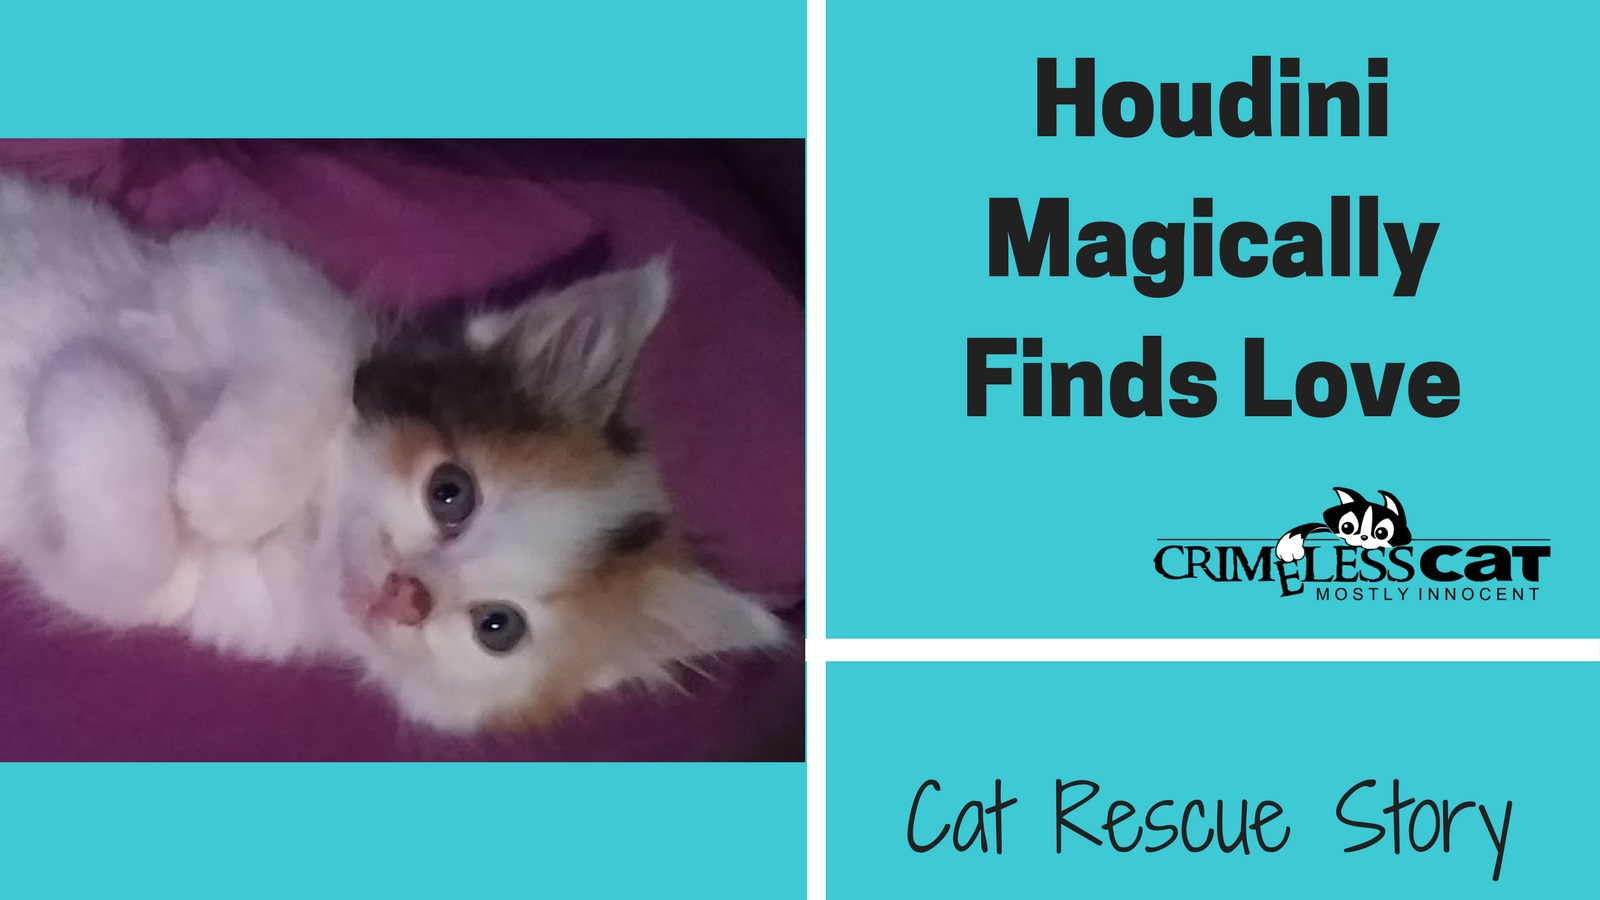 cat rescue story houdini